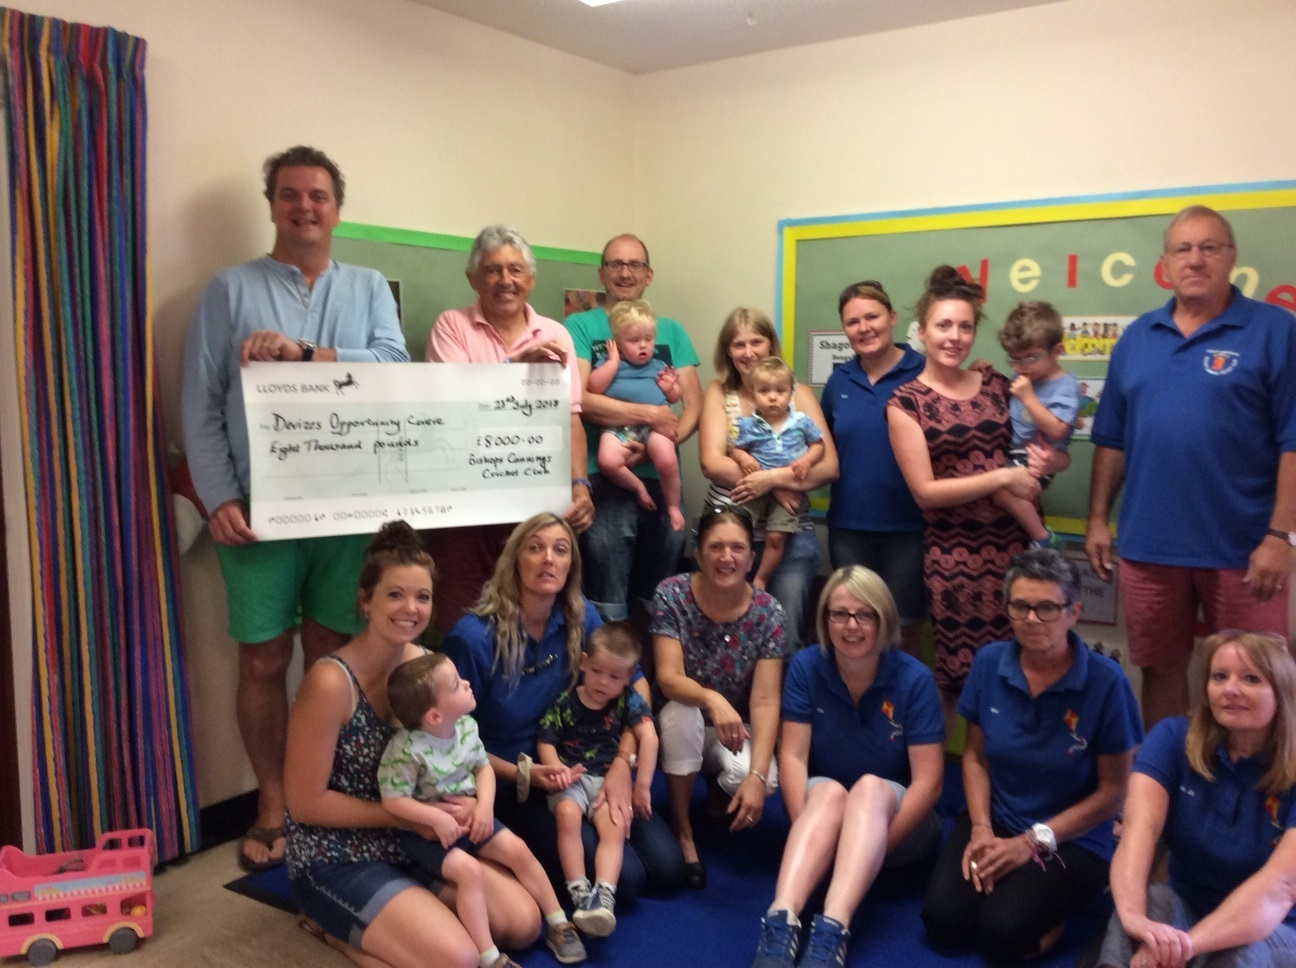 Cricket club members present cheque to Devizes Opportunity Centre